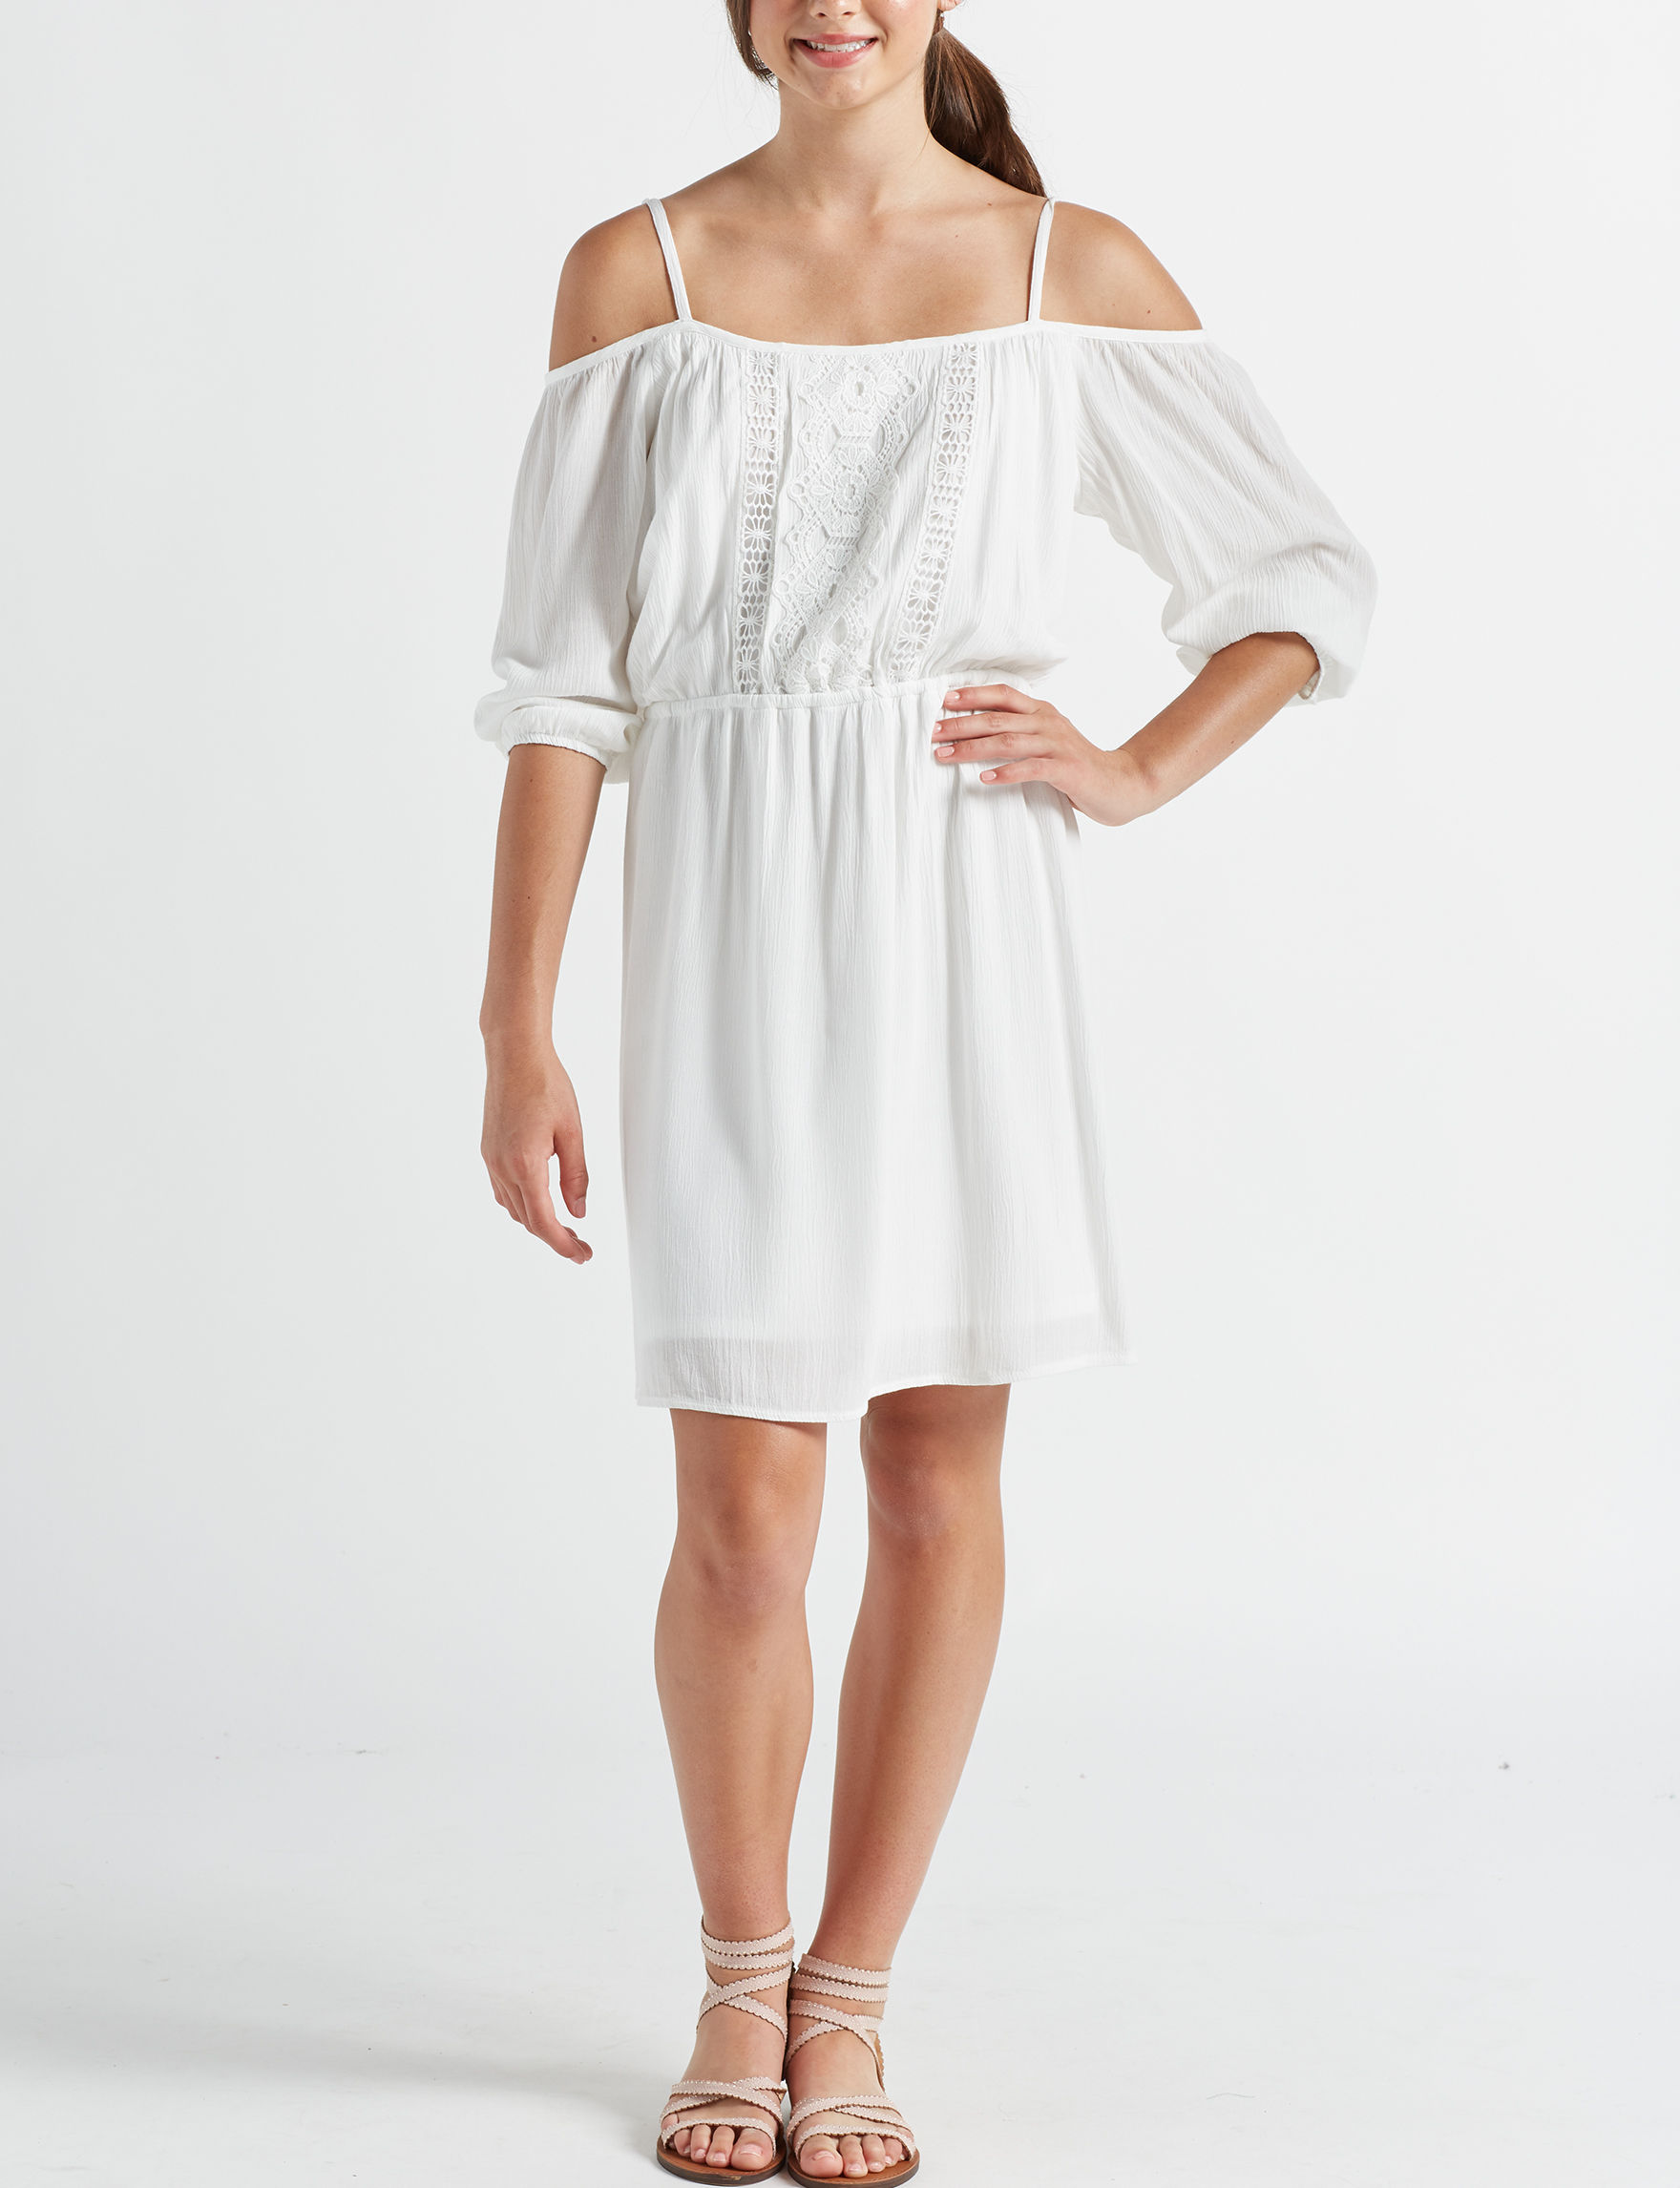 Bailey Blue White Everyday & Casual A-line Dresses